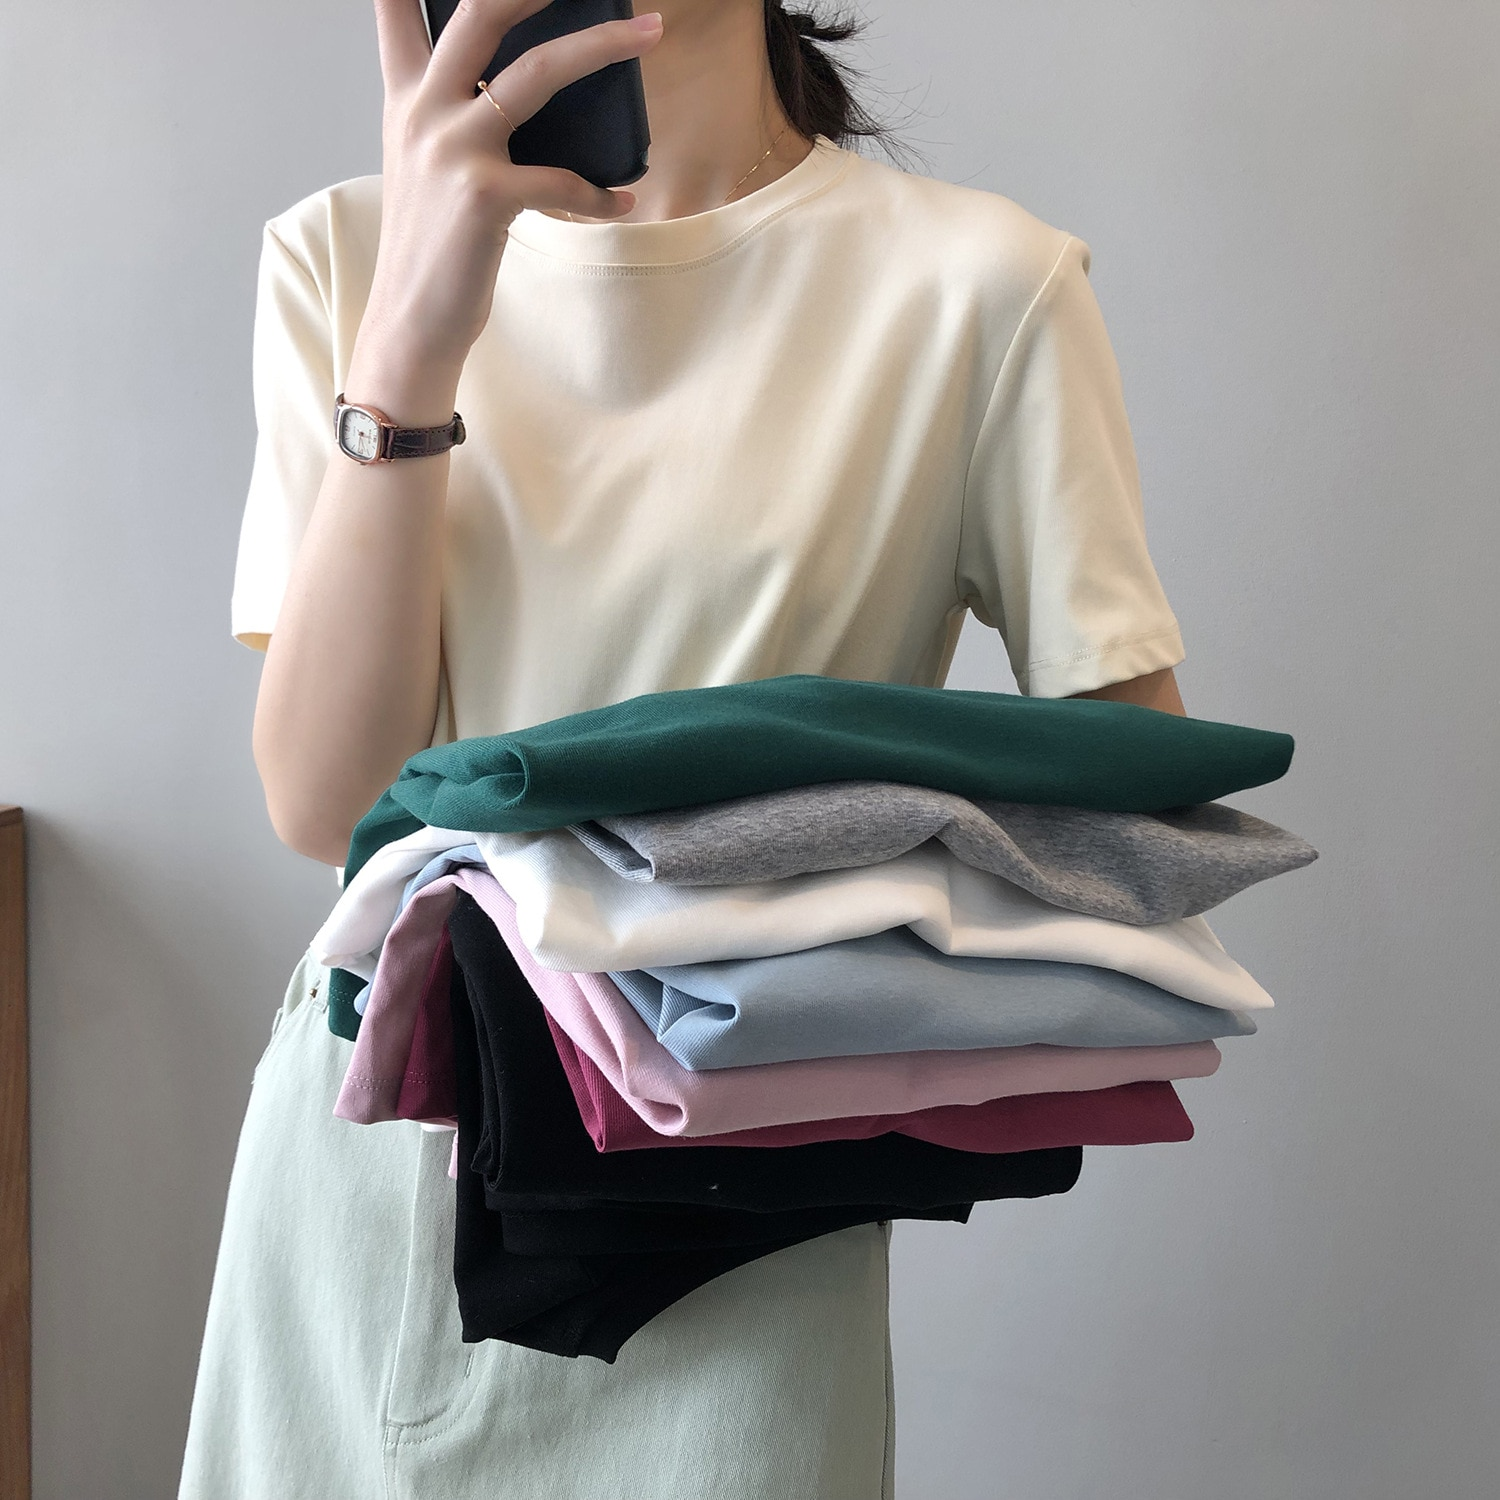 aliexpress.com - Pure color short-sleeved T-shirt women Women's cloth Korean version basic round neck loose white bottoming top all-match women